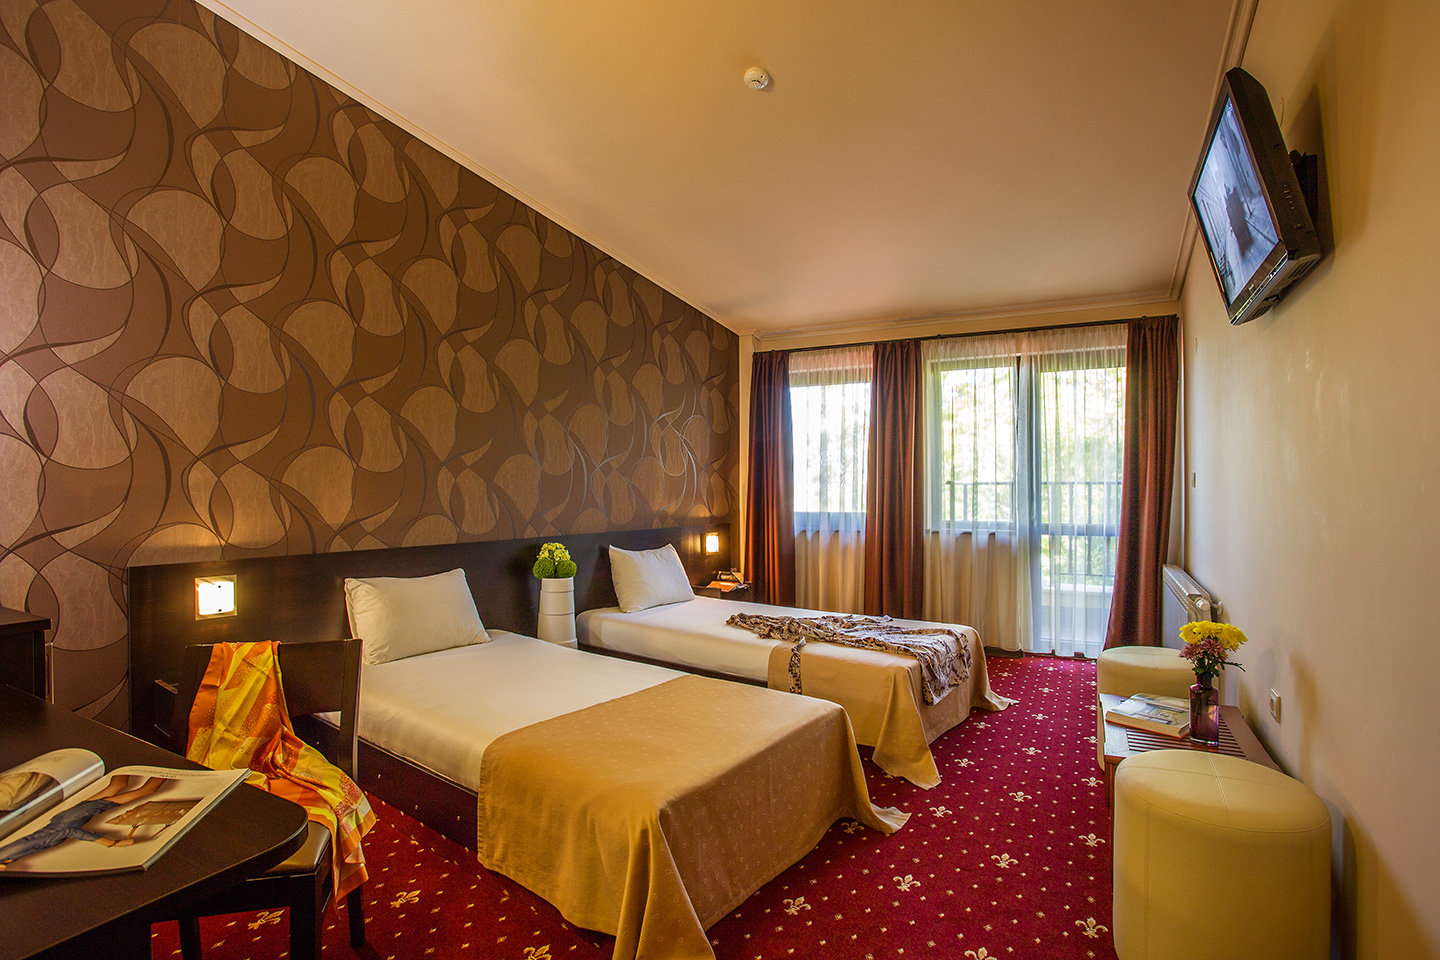 Hotels With Separate Bedrooms Double Room With Separate Beds Hotels In  Sofia Three